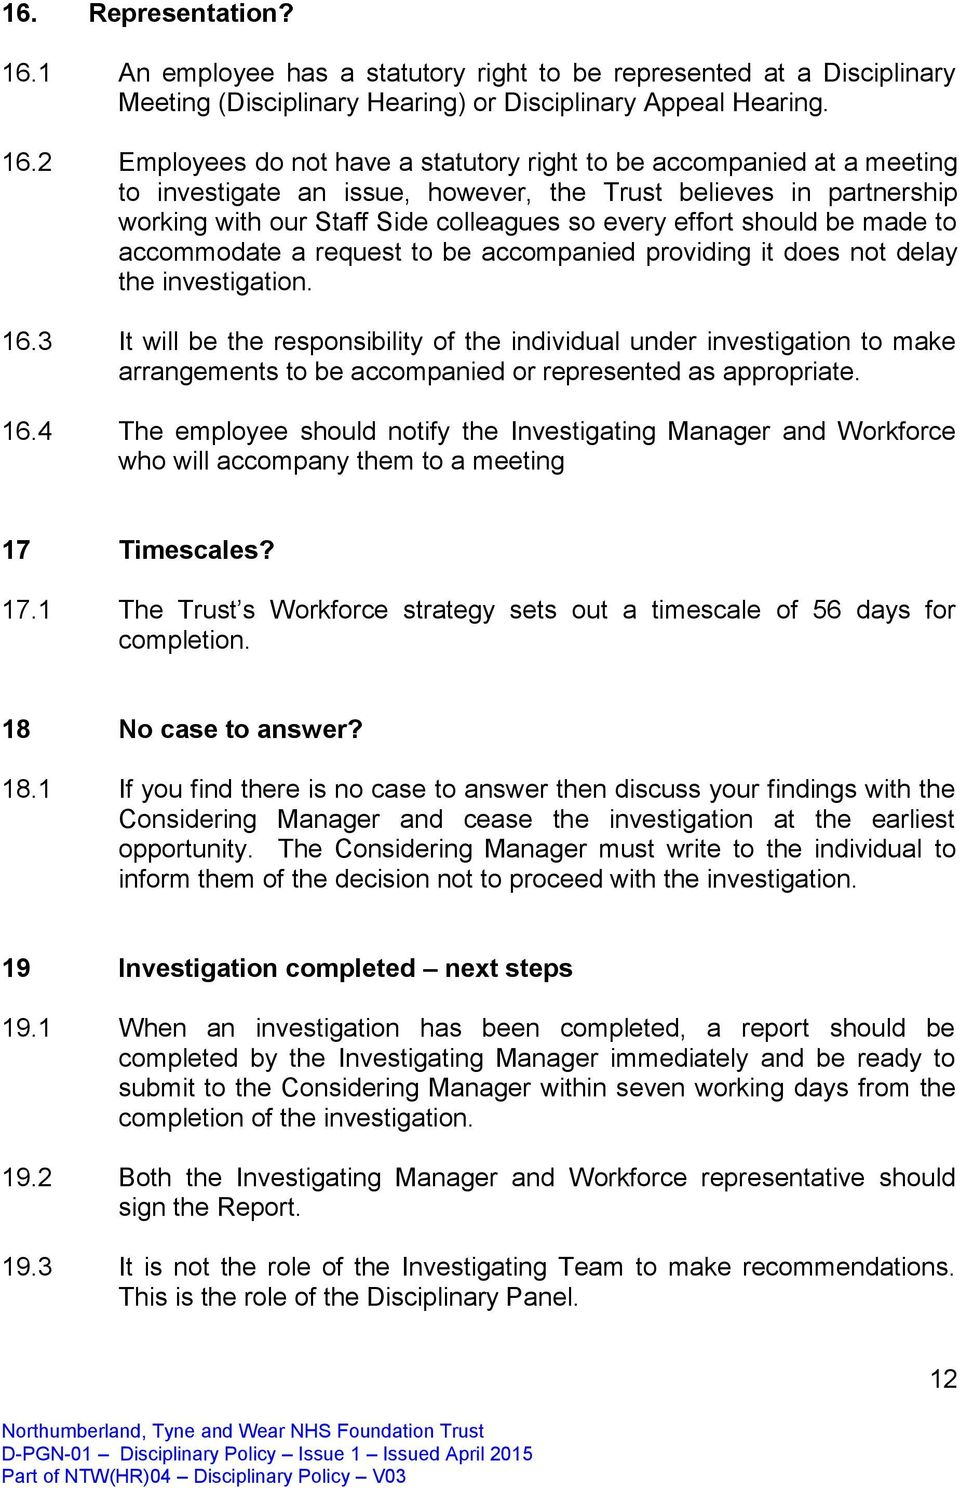 2 Employees do not have a statutory right to be accompanied at a meeting to investigate an issue, however, the Trust believes in partnership working with our Staff Side colleagues so every effort